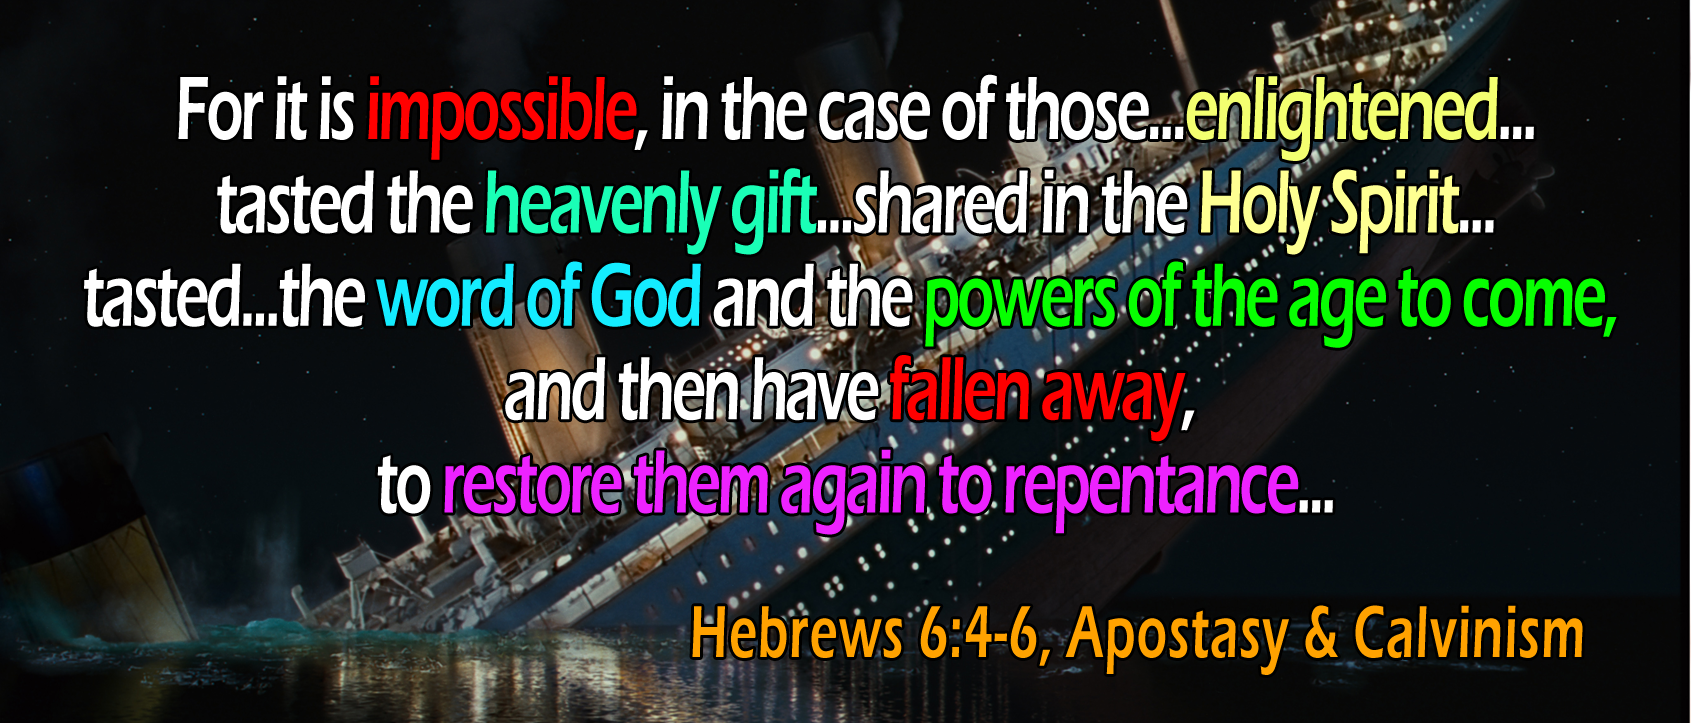 Hebrews 6:4-6, Apostasy and Calvinism